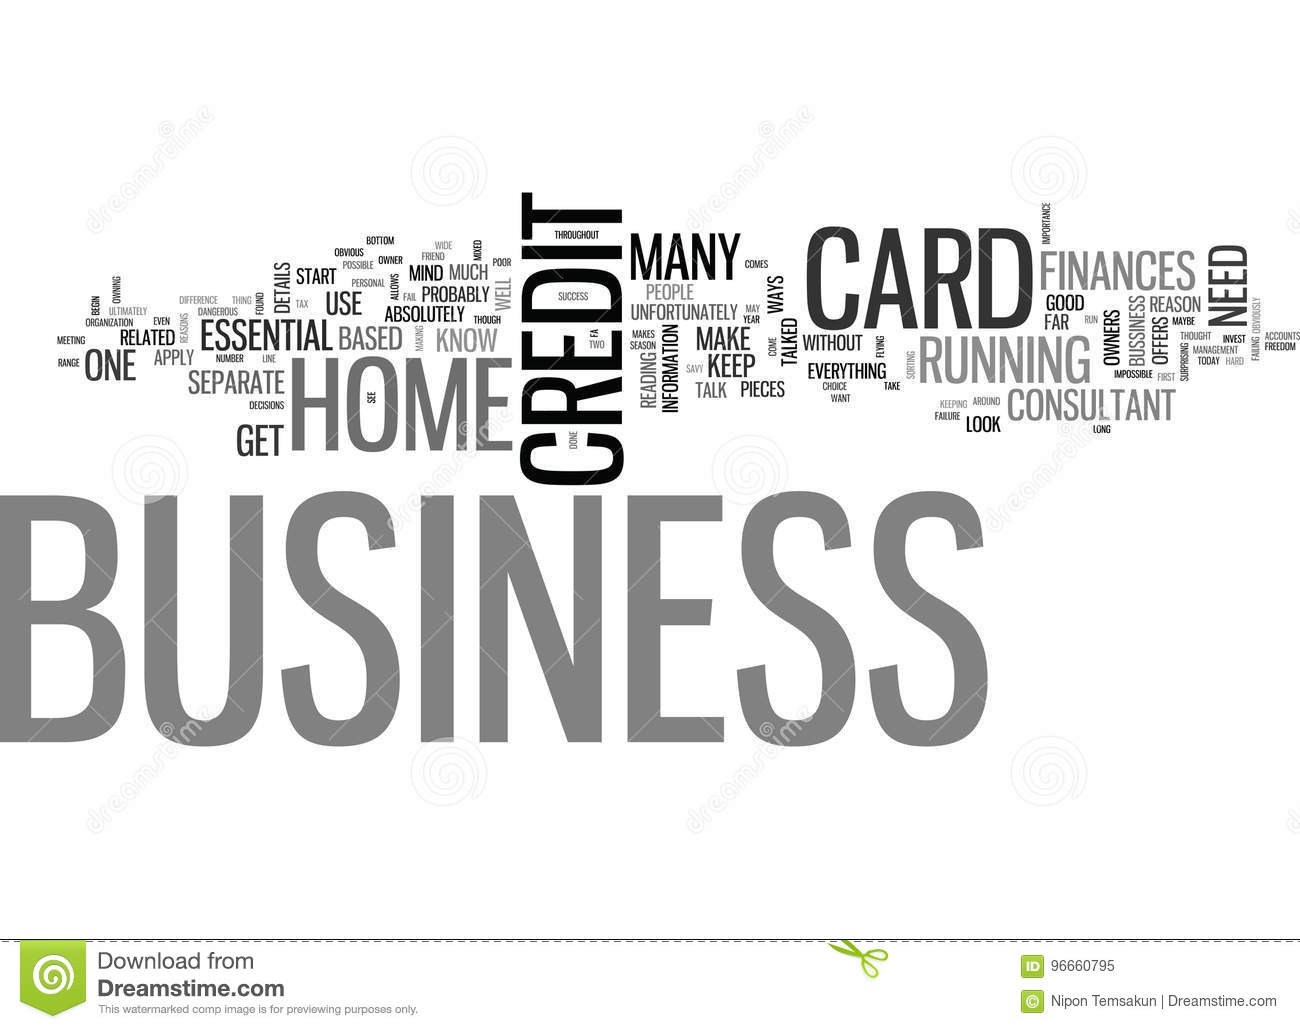 A business credit card is essential word cloud stock illustration download a business credit card is essential word cloud stock illustration illustration of cloud reheart Choice Image